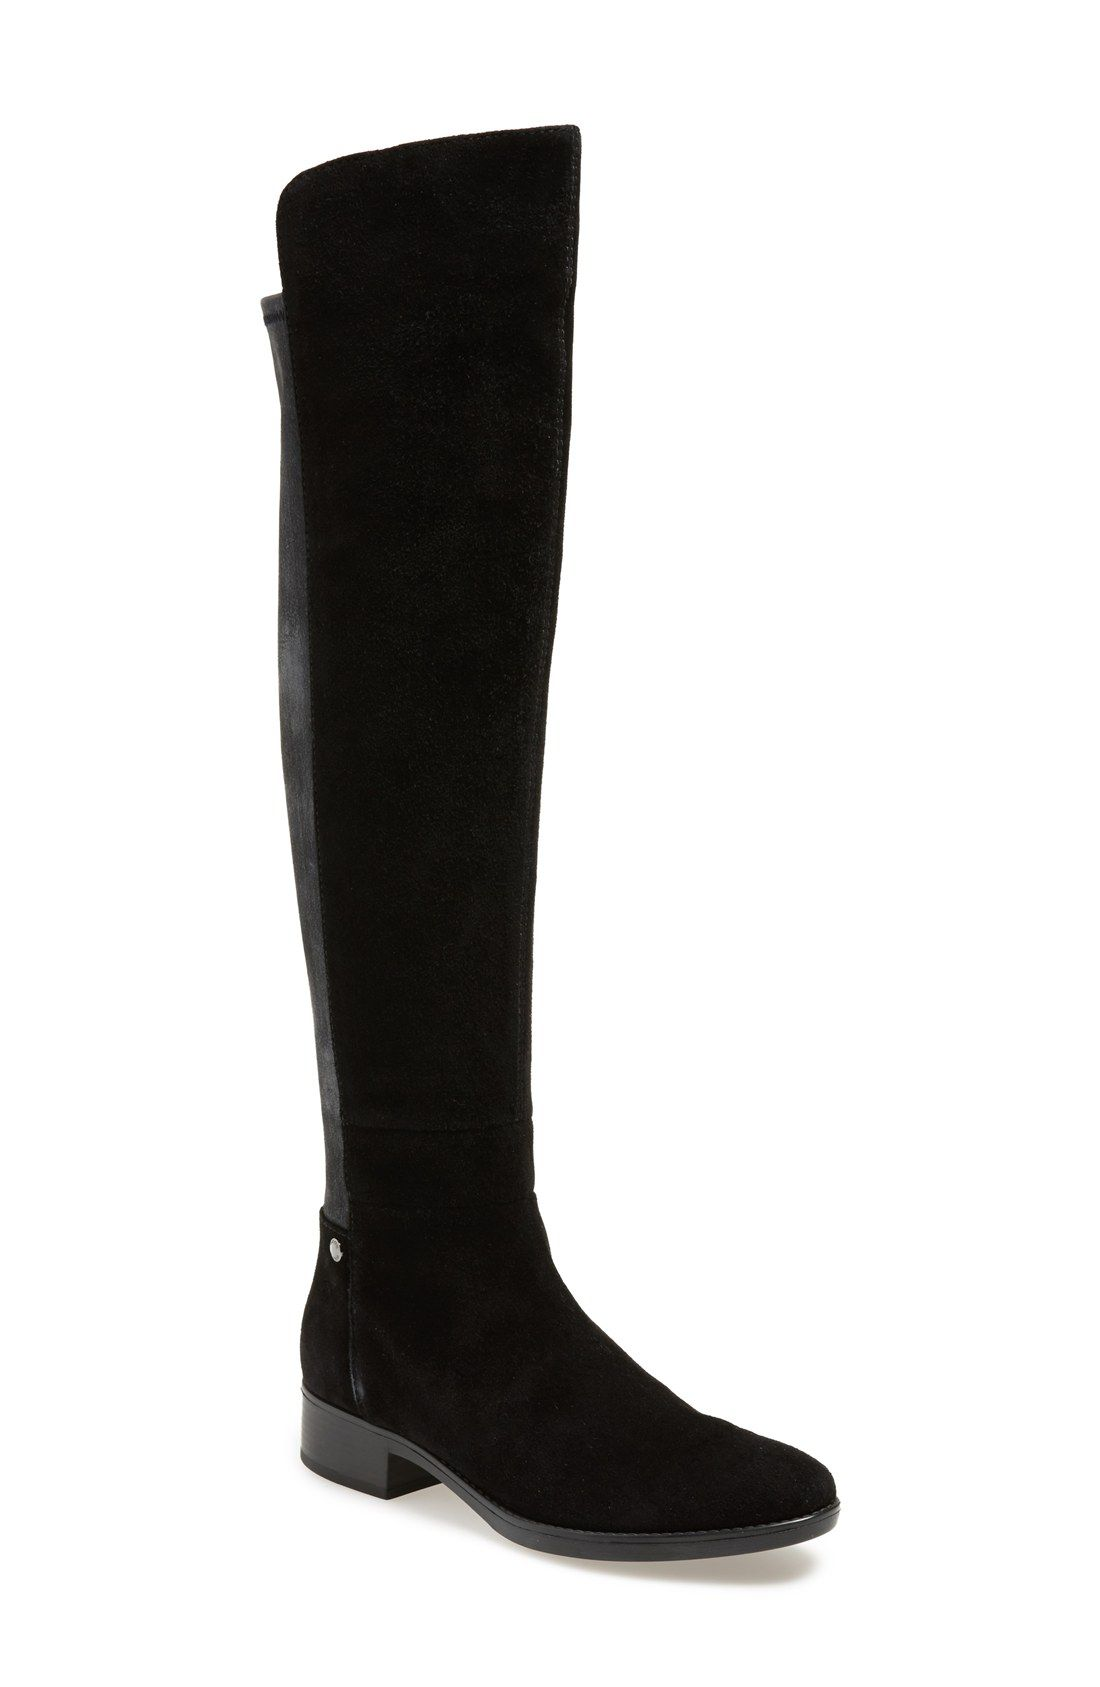 84b51130e8 Geox 'Felicity' Over the Knee Boot (Women) | shoes. | Boots, Over ...